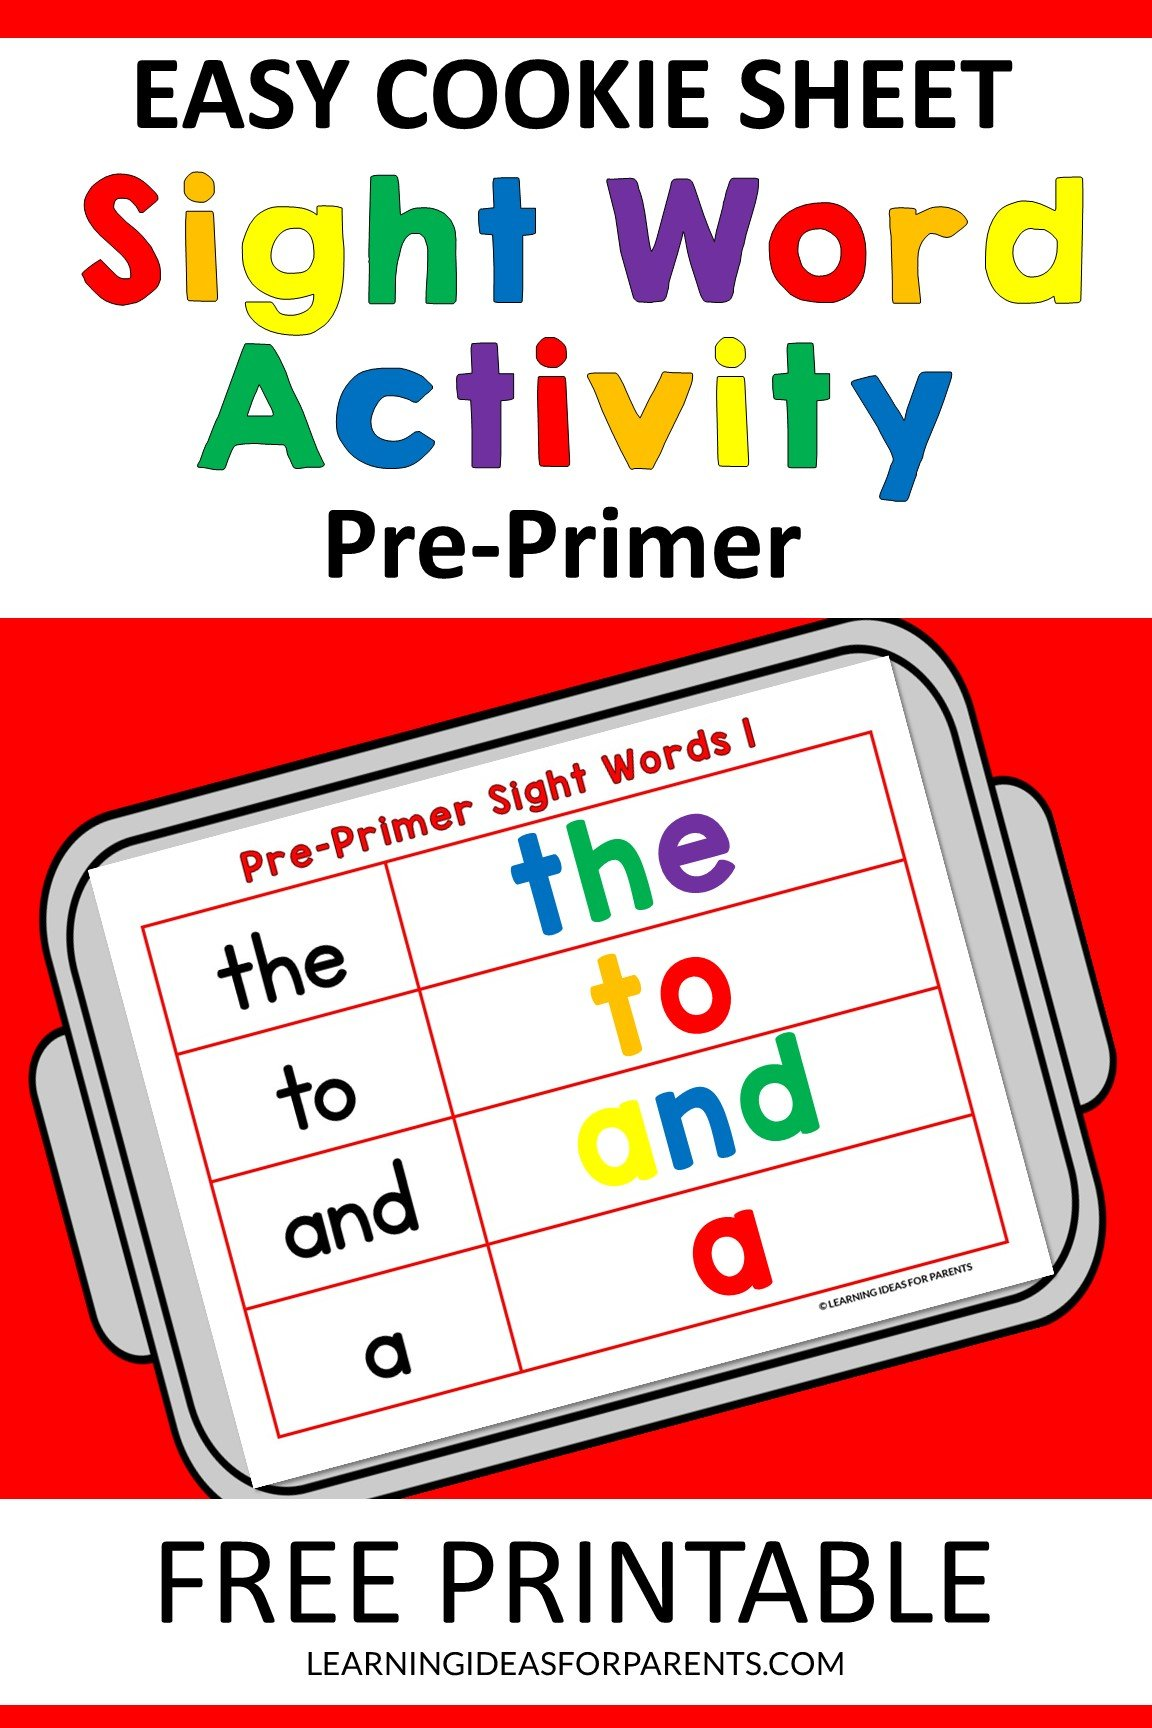 Free printable easy cookie sheet pre-primer sight word activity.